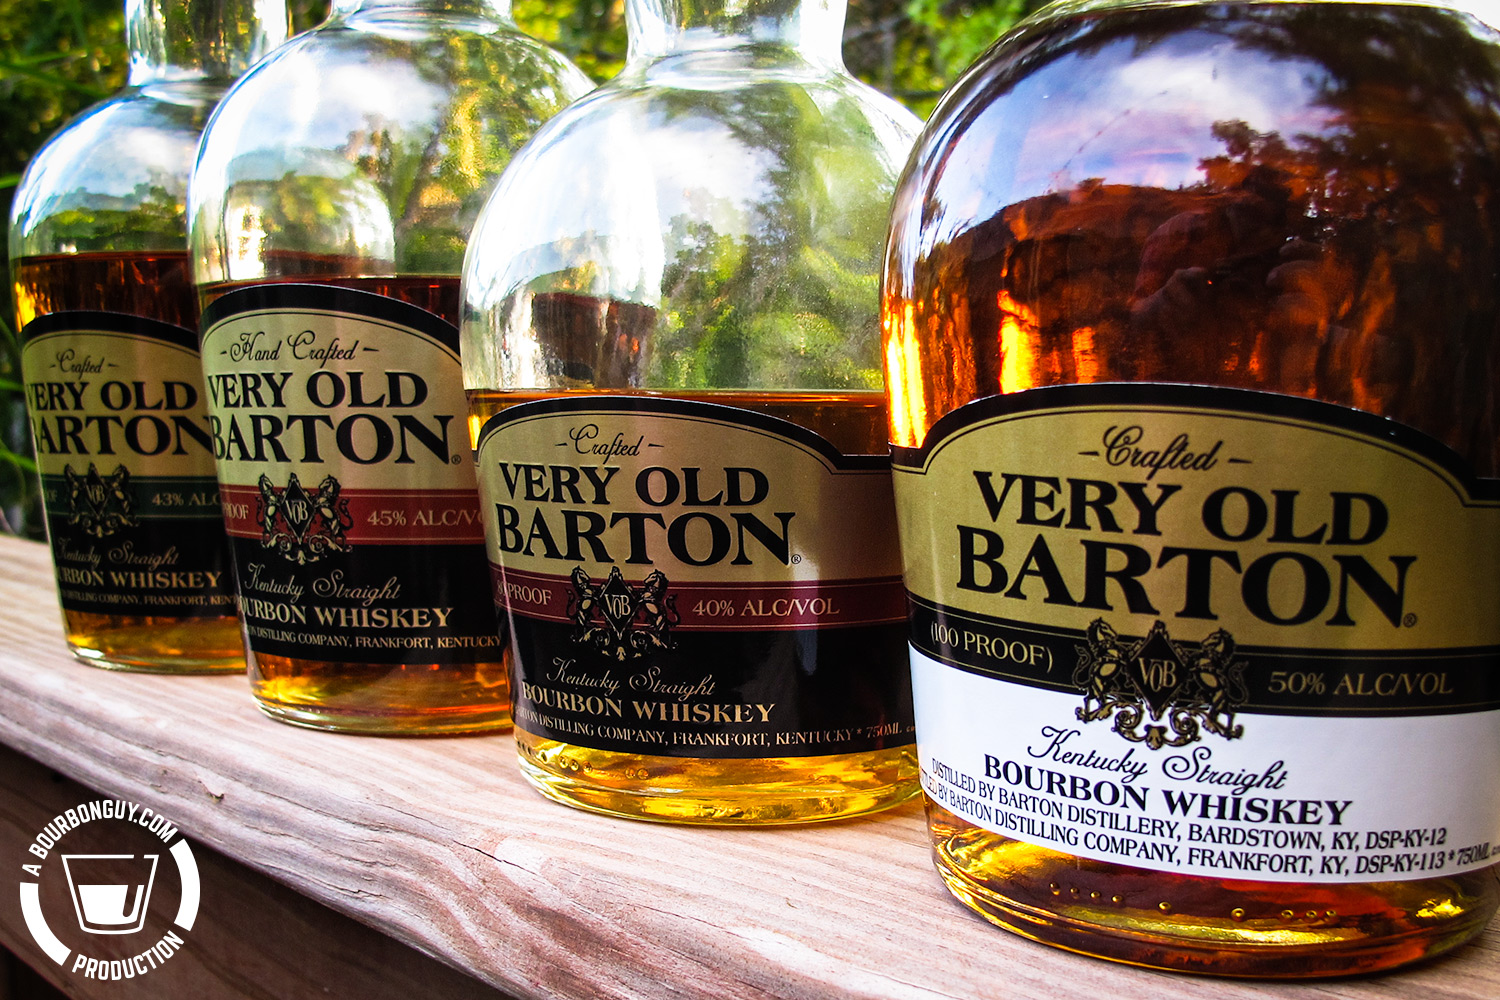 IMAGE: Four Bottles of Very Old Barton. 100 proof, 80 proof, 90 proof and 86 proof.